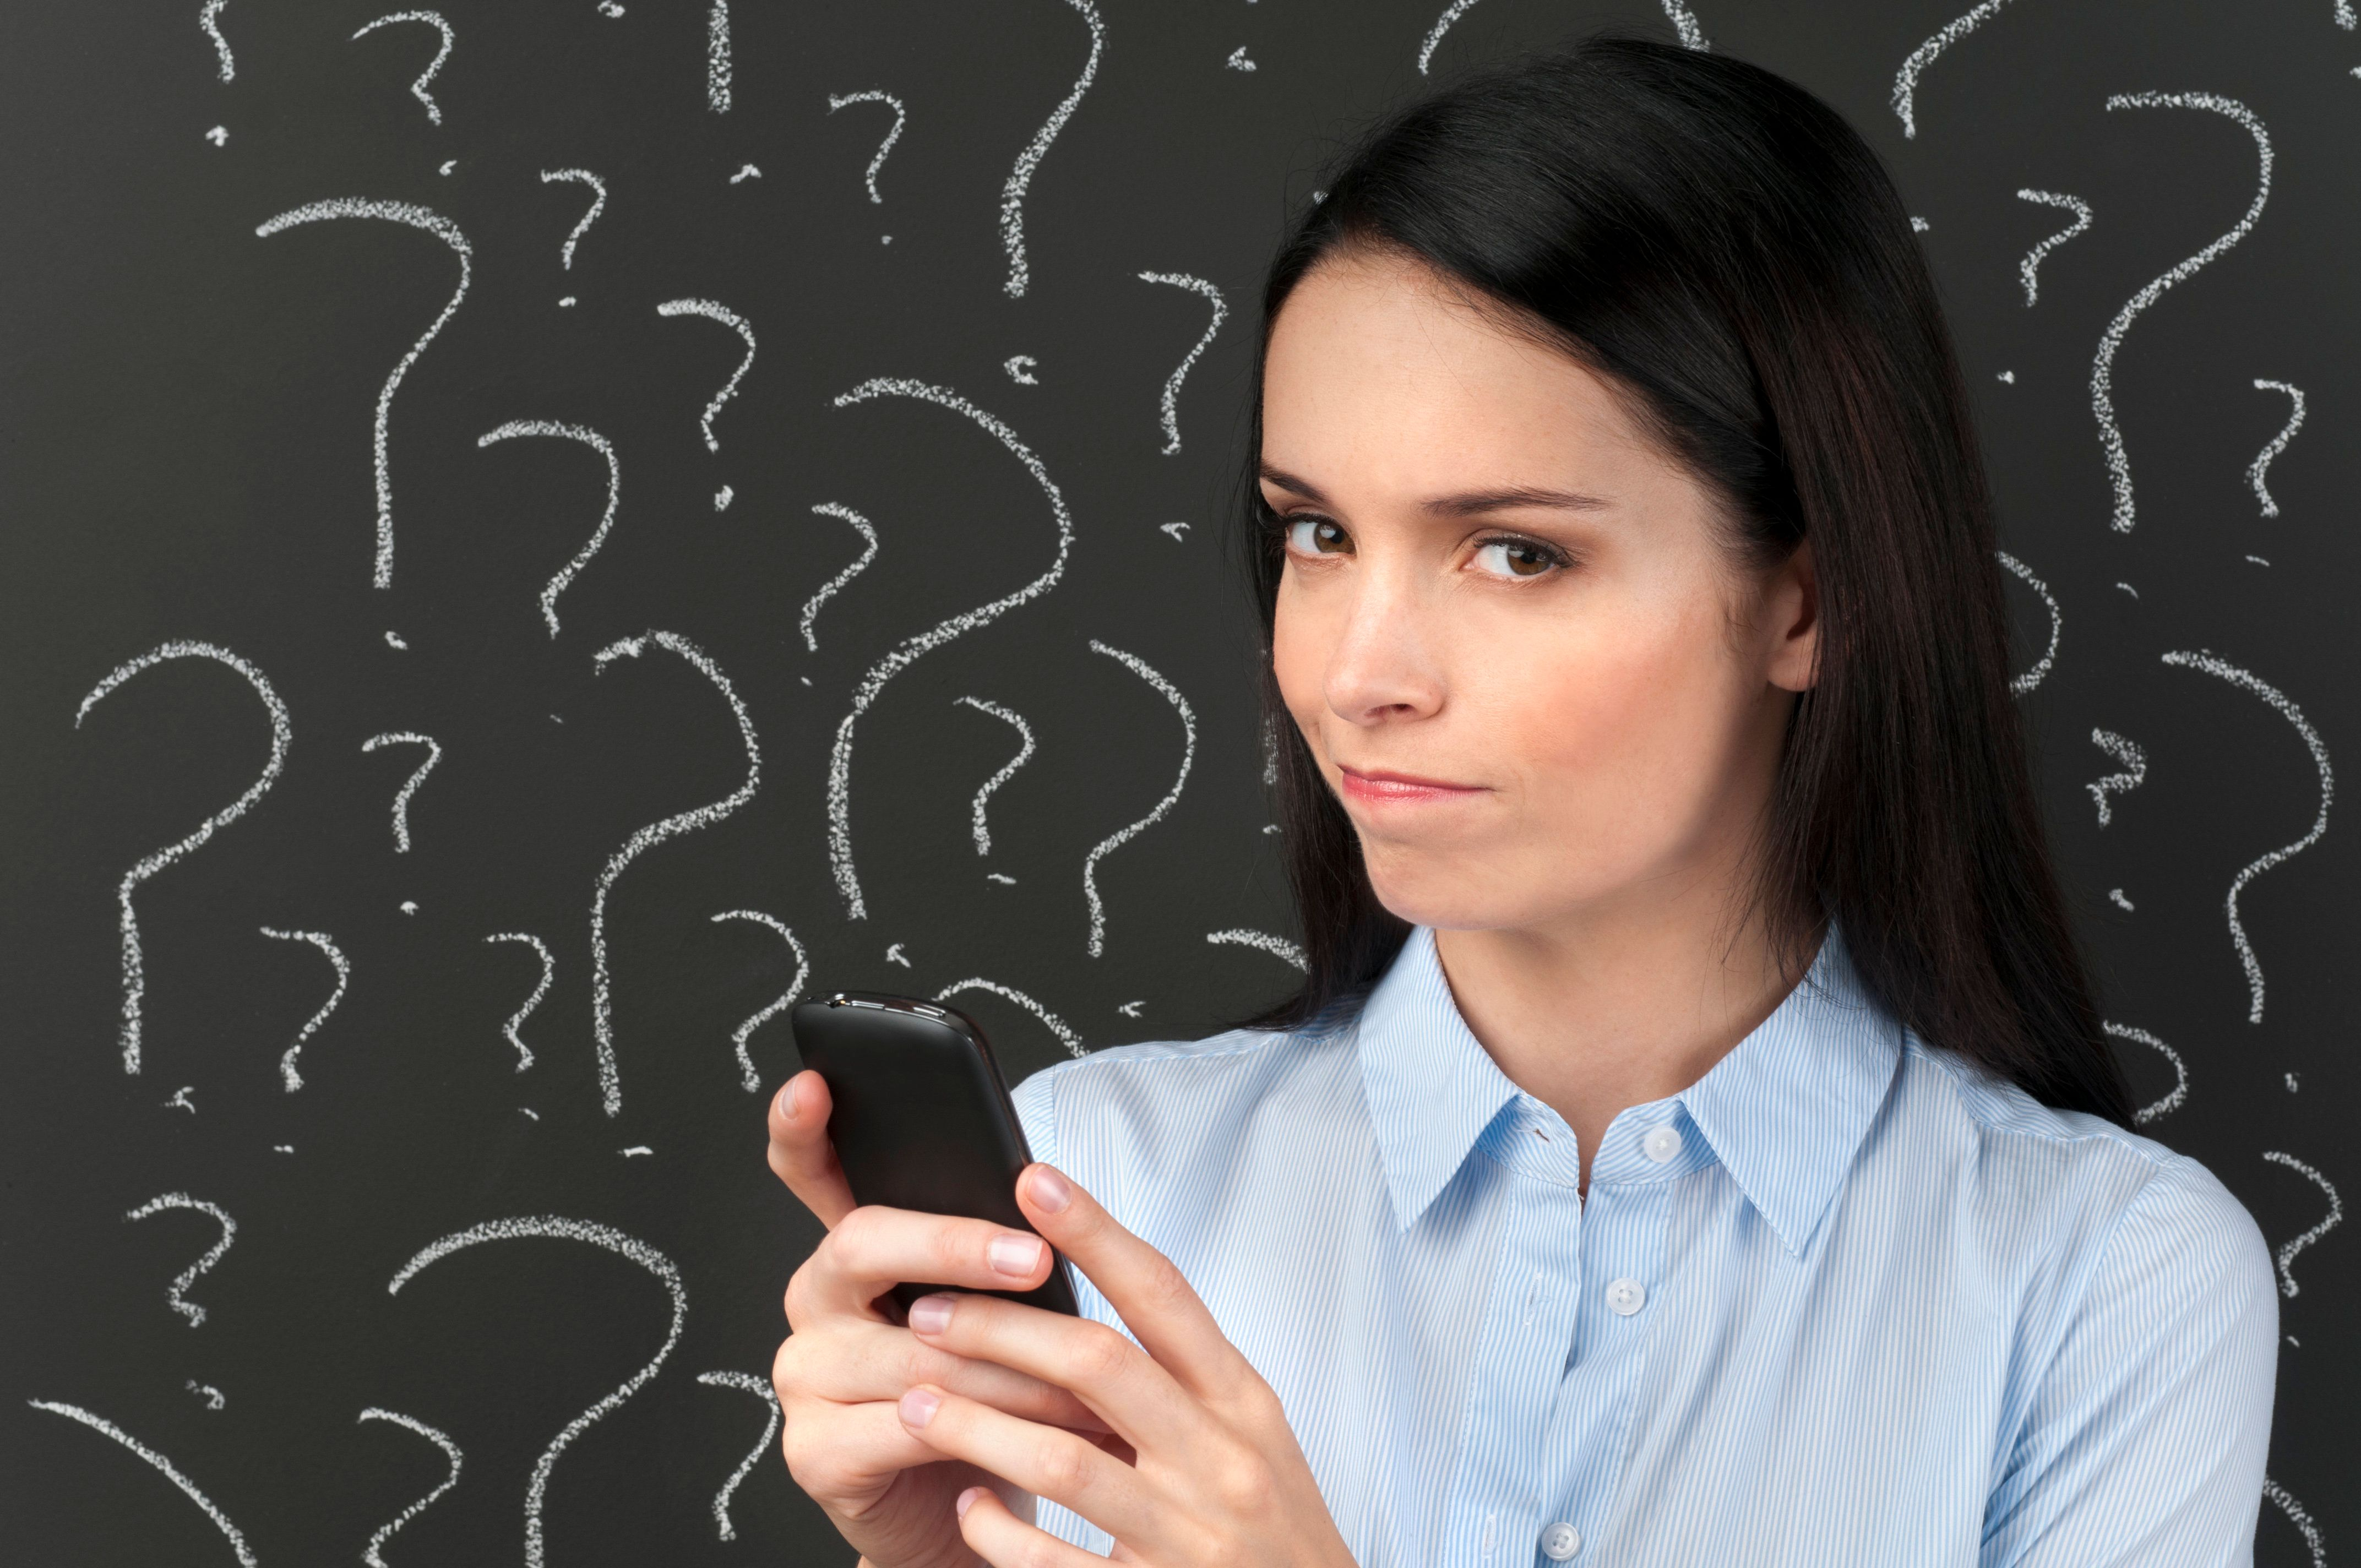 Mobile phone service concept - Woman texting with question marks on a blackboard.